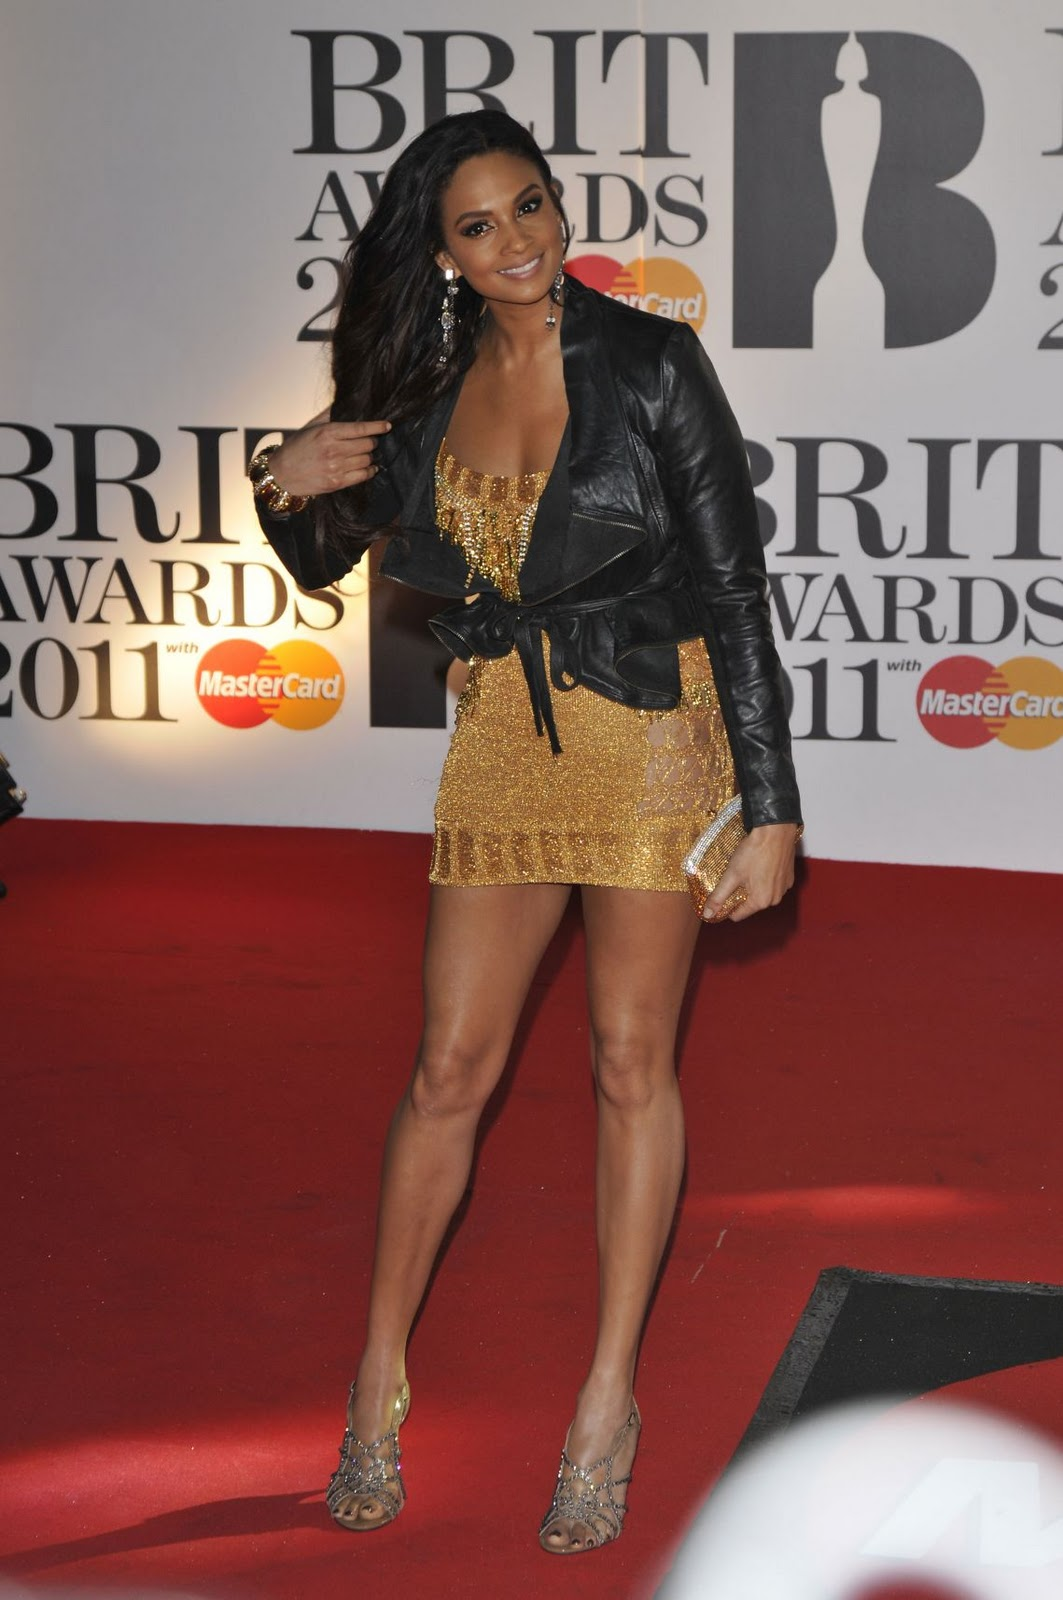 justin bieber brit awards 2011